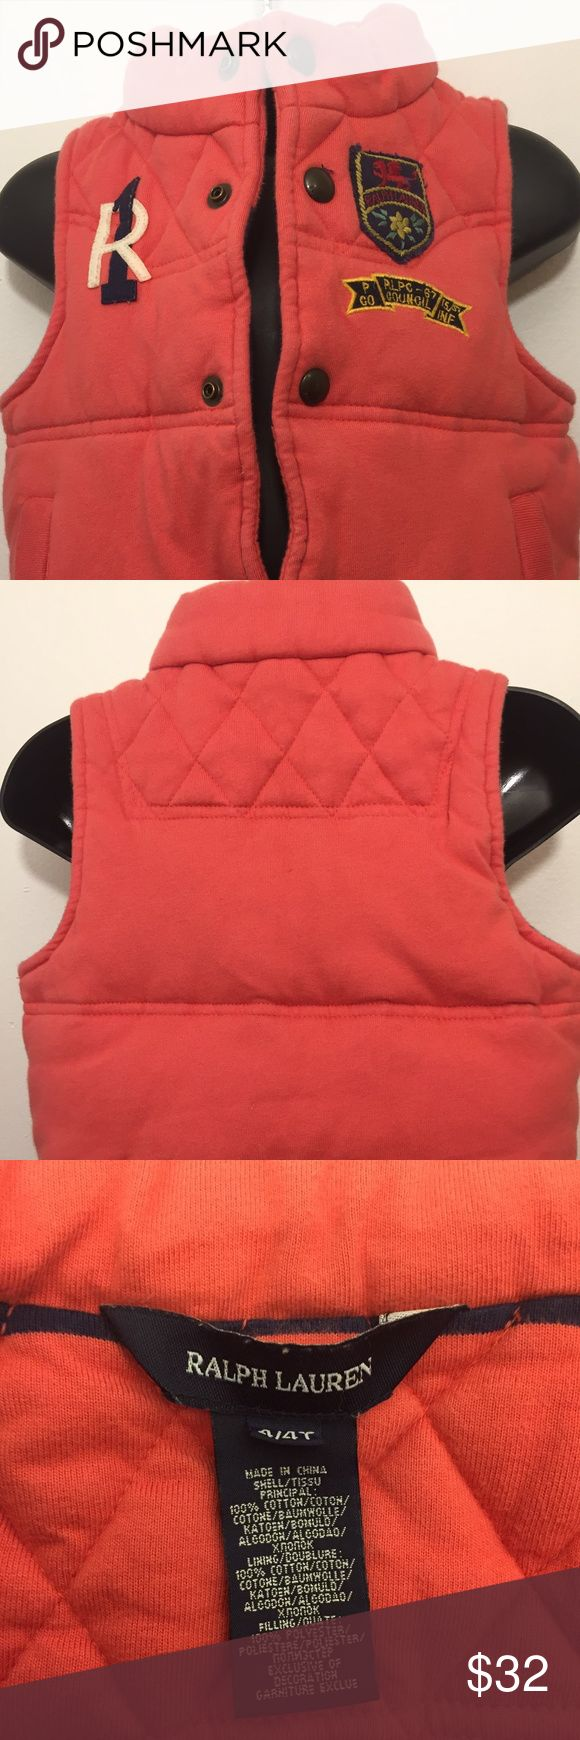 "Ralph Lauren Polo Girls 4T Orange Puffer Vest Ralph Lauren Polo Girls 4T Orange Puffer Vest  Great Pre-owned condition. 100% Cotton  Medium Weight Quilted style with Stitched Patches.  Beautiful Ralph Lauren embossed  buttons. 16"" long from collar to hem 13"" across the bottom  030318/TRS/101/G Ralph Lauren Polo Jackets & Coats Puffers"